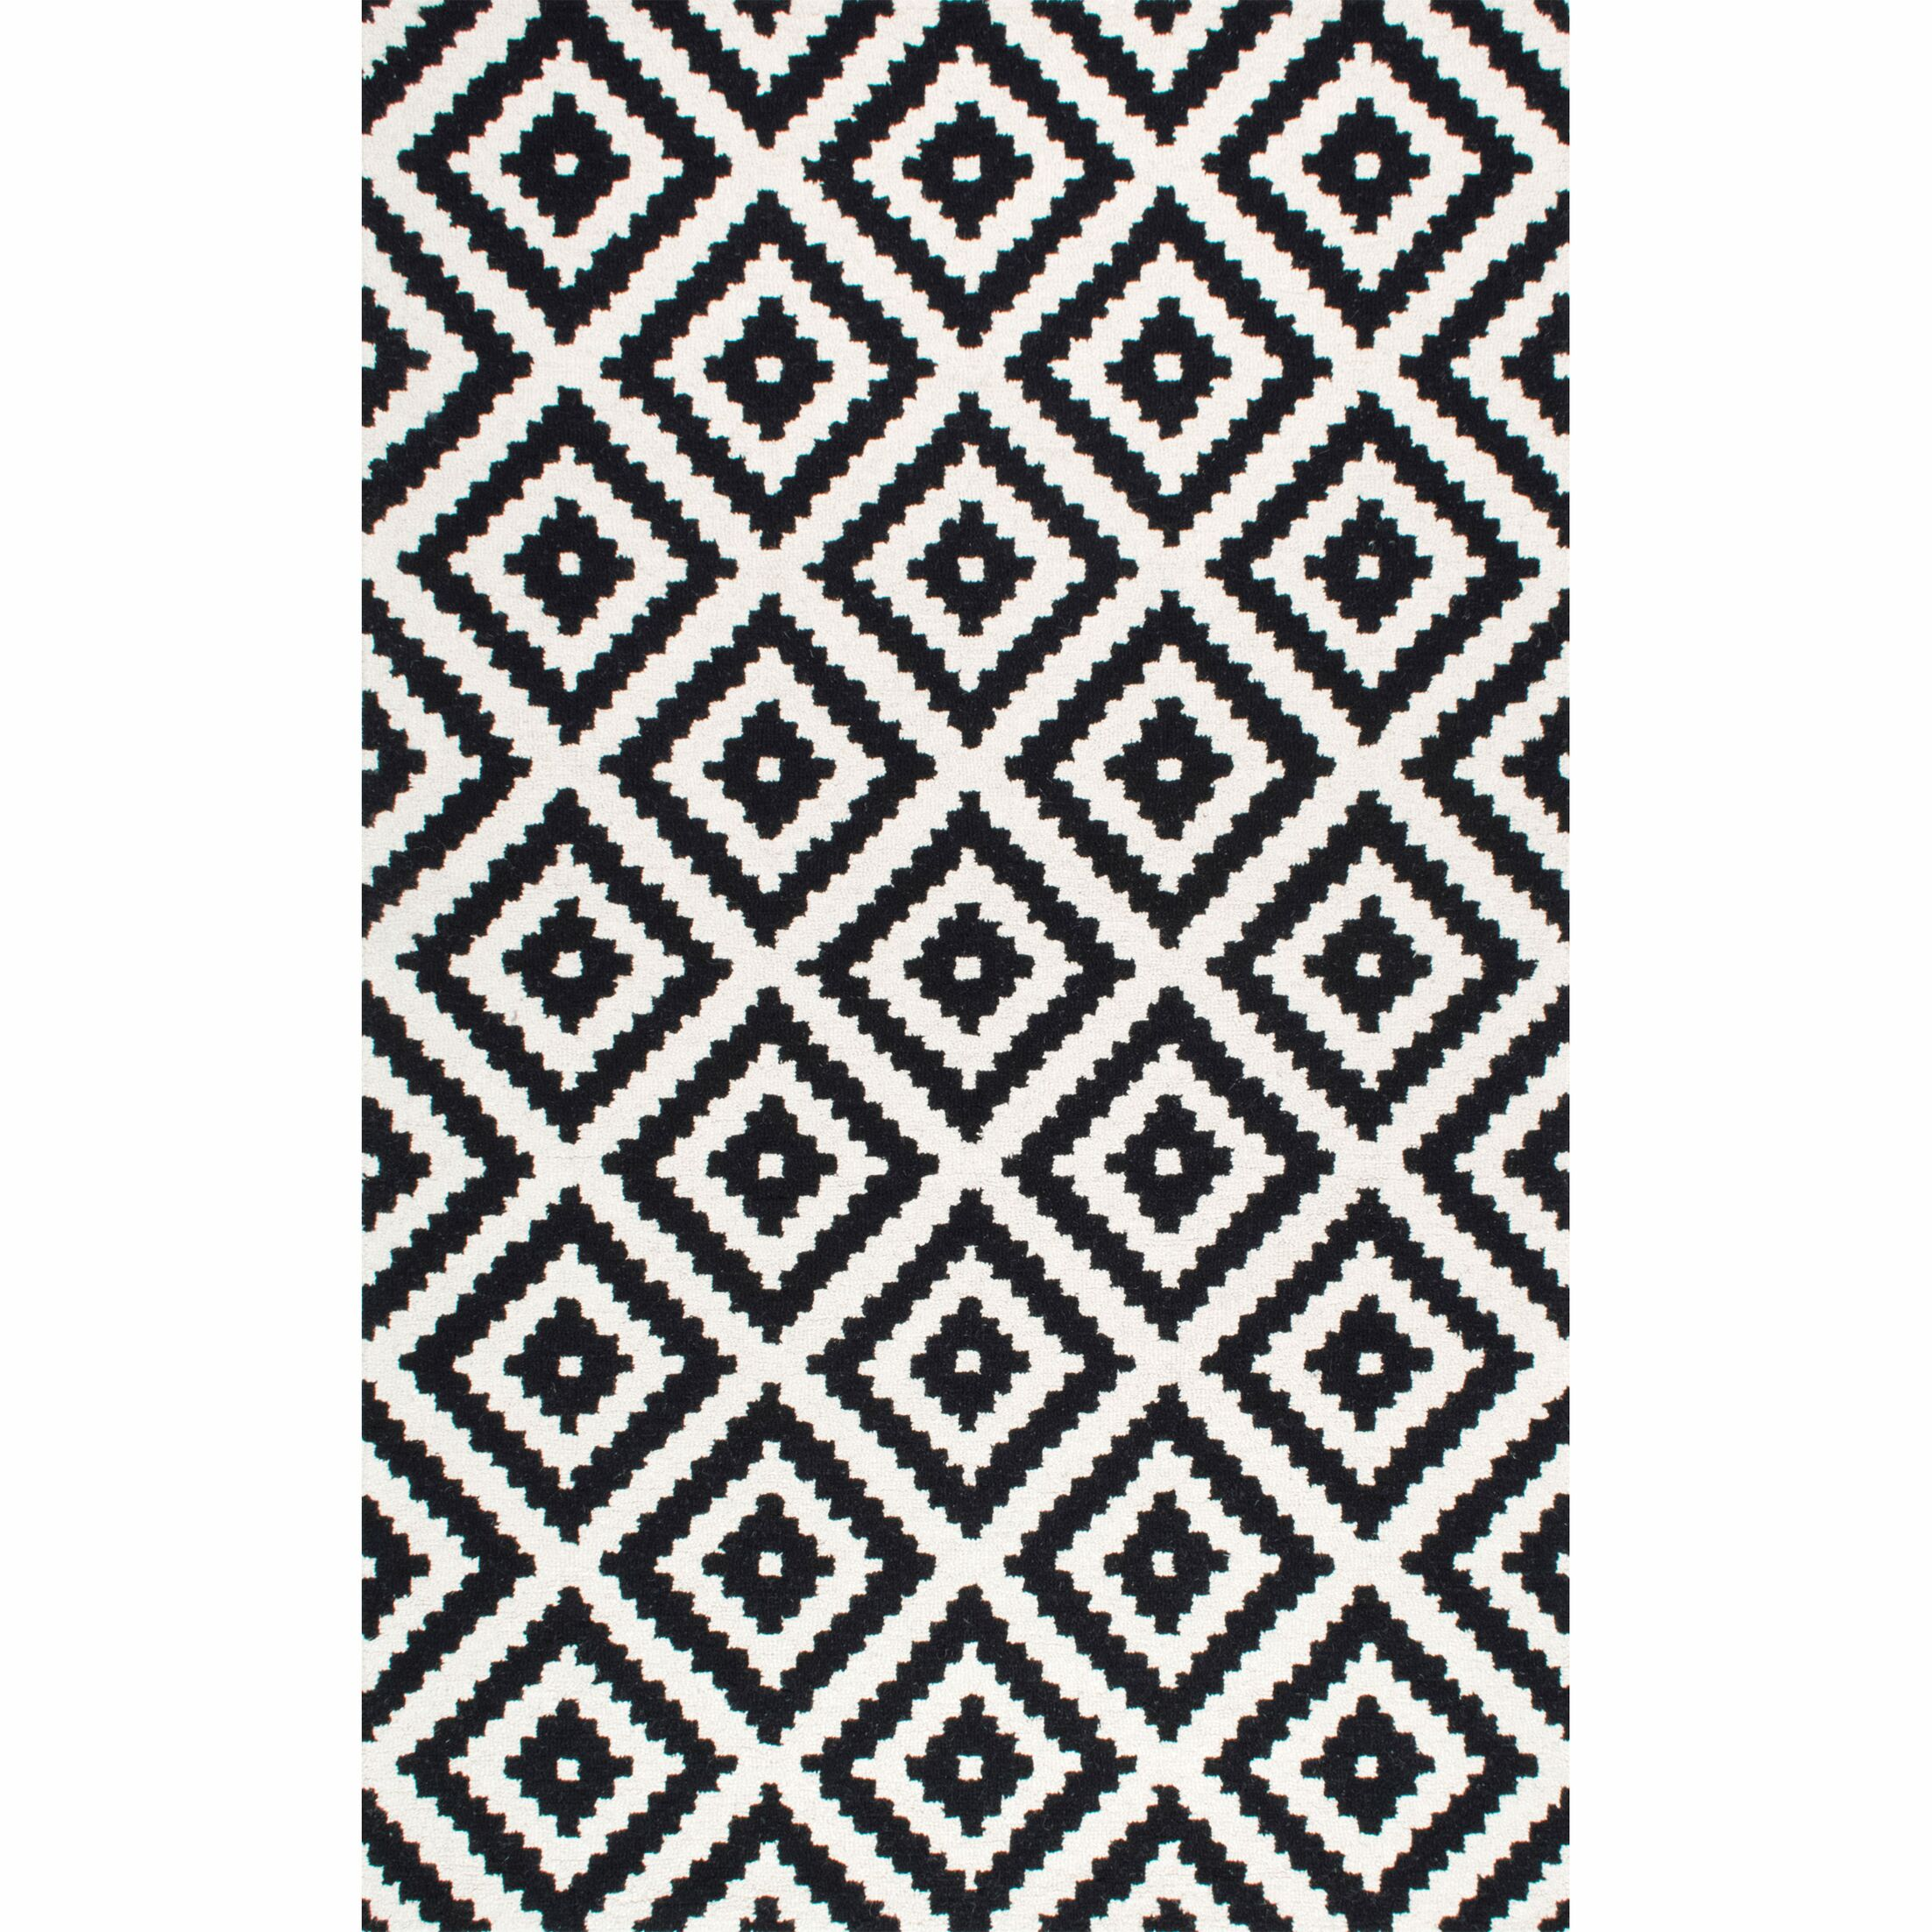 Obadiah Hand-Tufted Wool Black Area Rug Rug Size: Square 8'